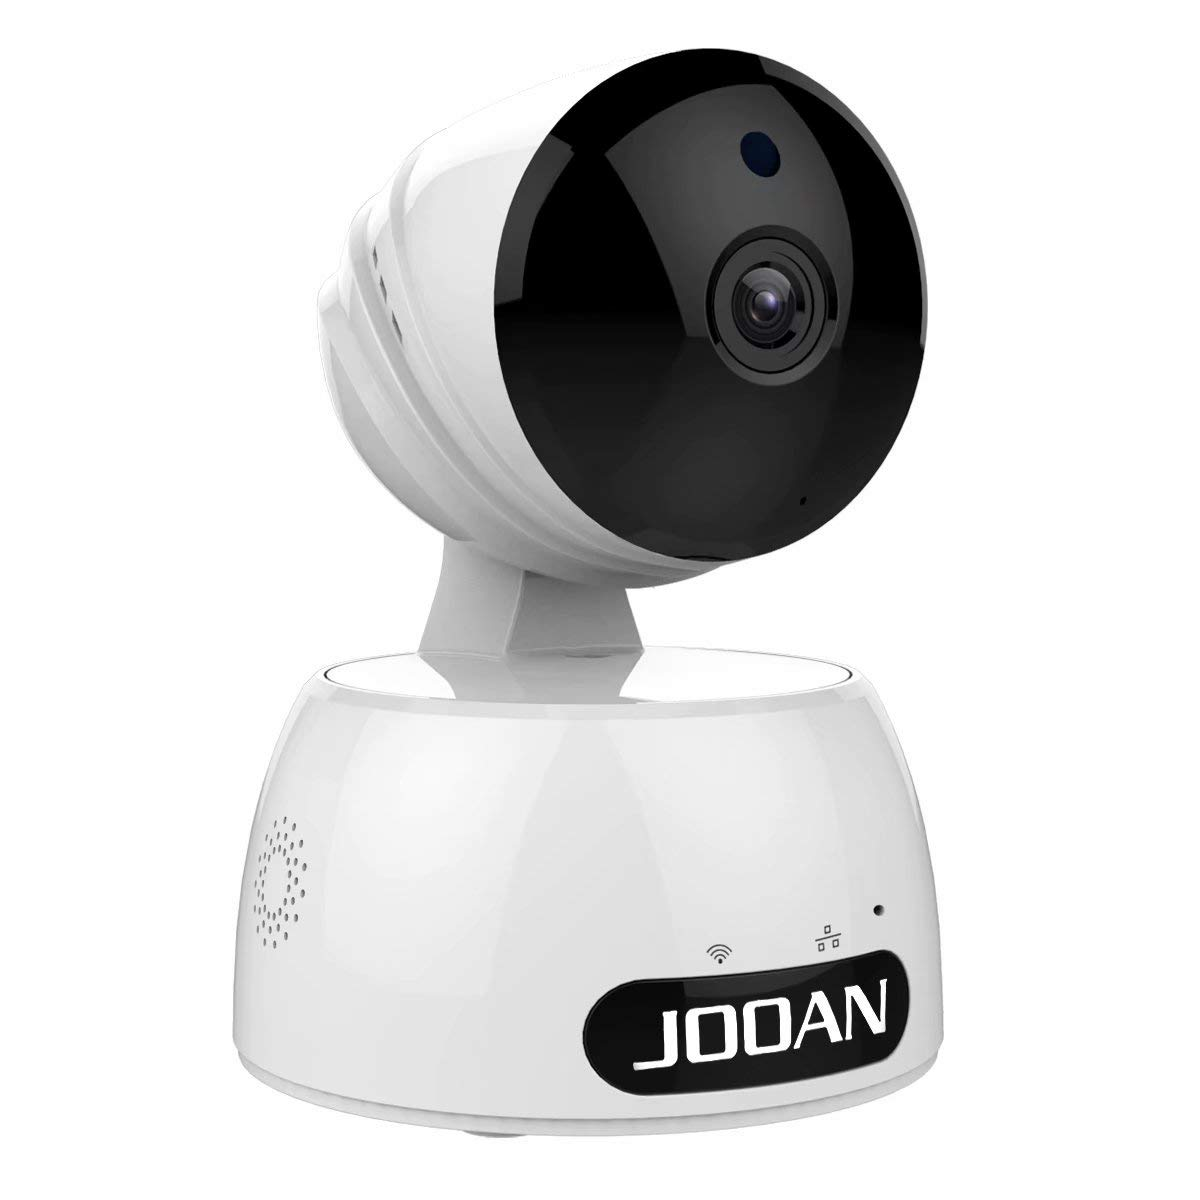 Security IP Camera, JOOAN 2.0MP 1080P Home Wireless Video Surveillance System With Two Way Audio Remote Indoor Night Vision Pet Baby Monitor 366